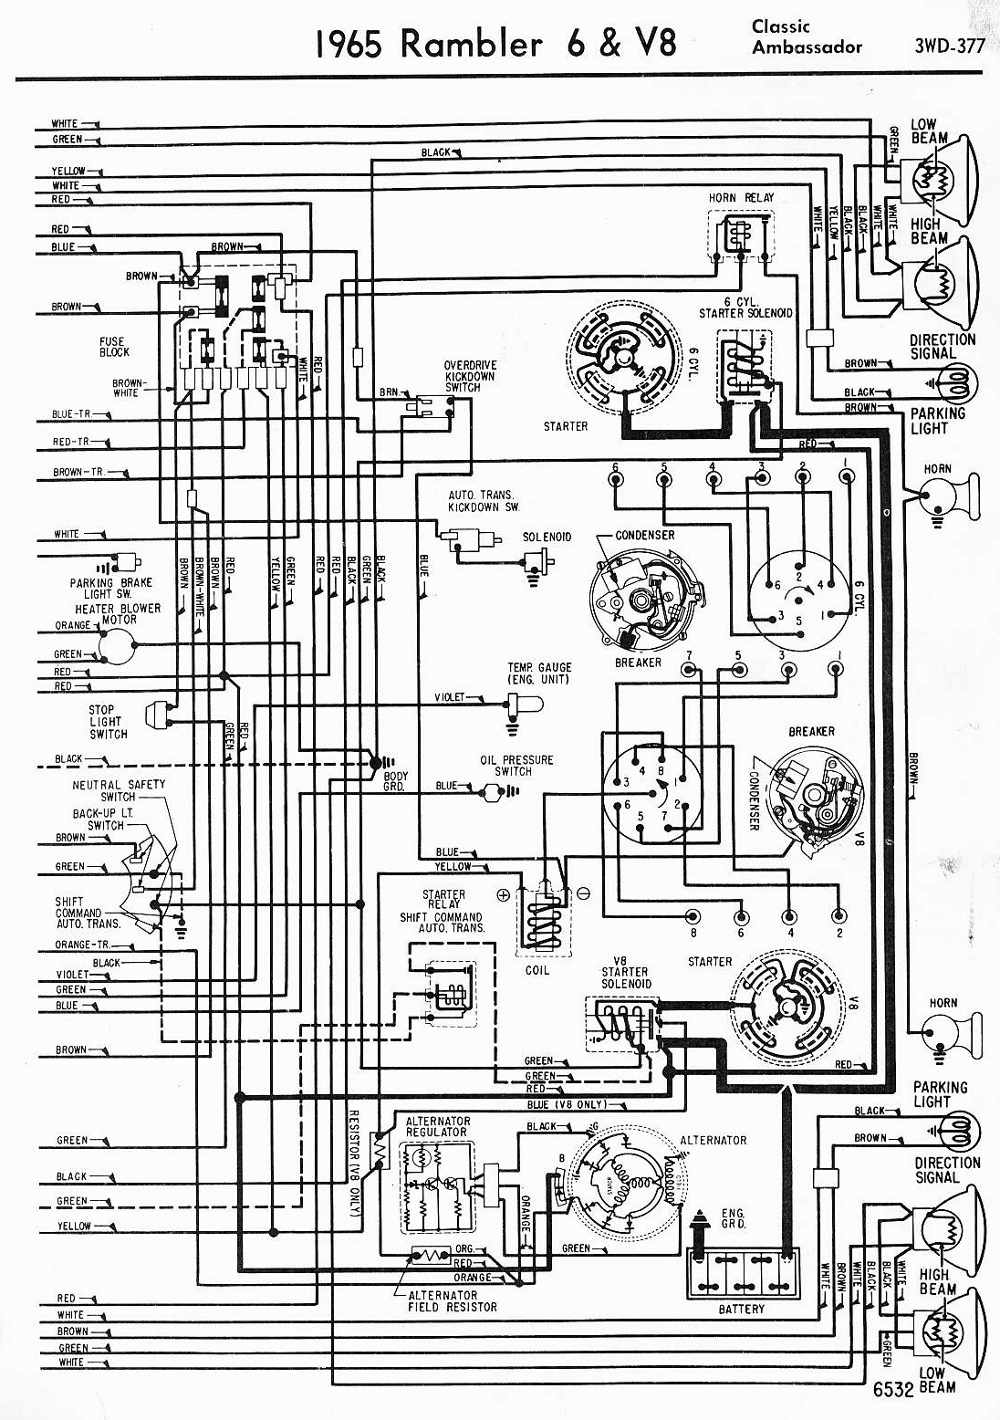 wiring diagrams of 1965 AMC rambler 6 and v8 classic and ambassador part 2?td1484904655 ford transit wiring diagram download efcaviation com 2014 ford transit connect wiring diagram at soozxer.org